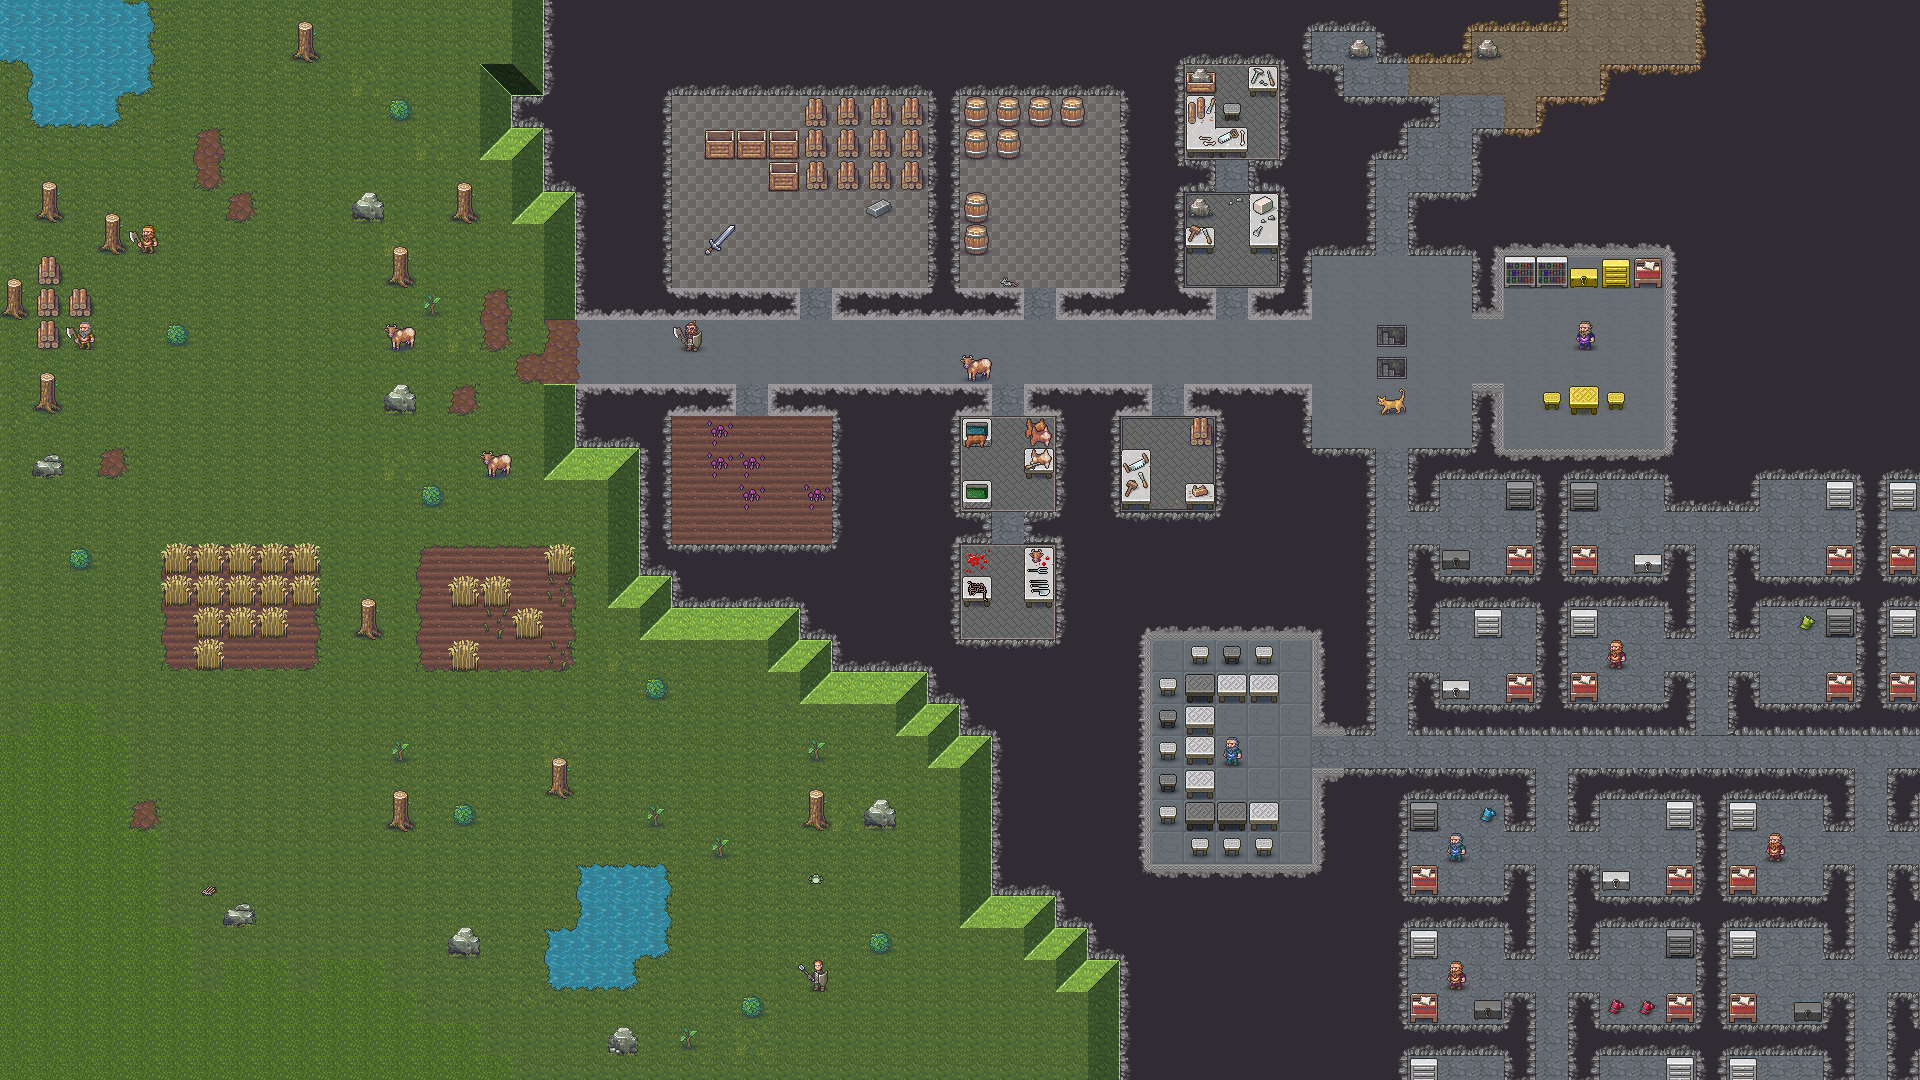 Dwarf Fortress is coming to Steam with graphics and mod